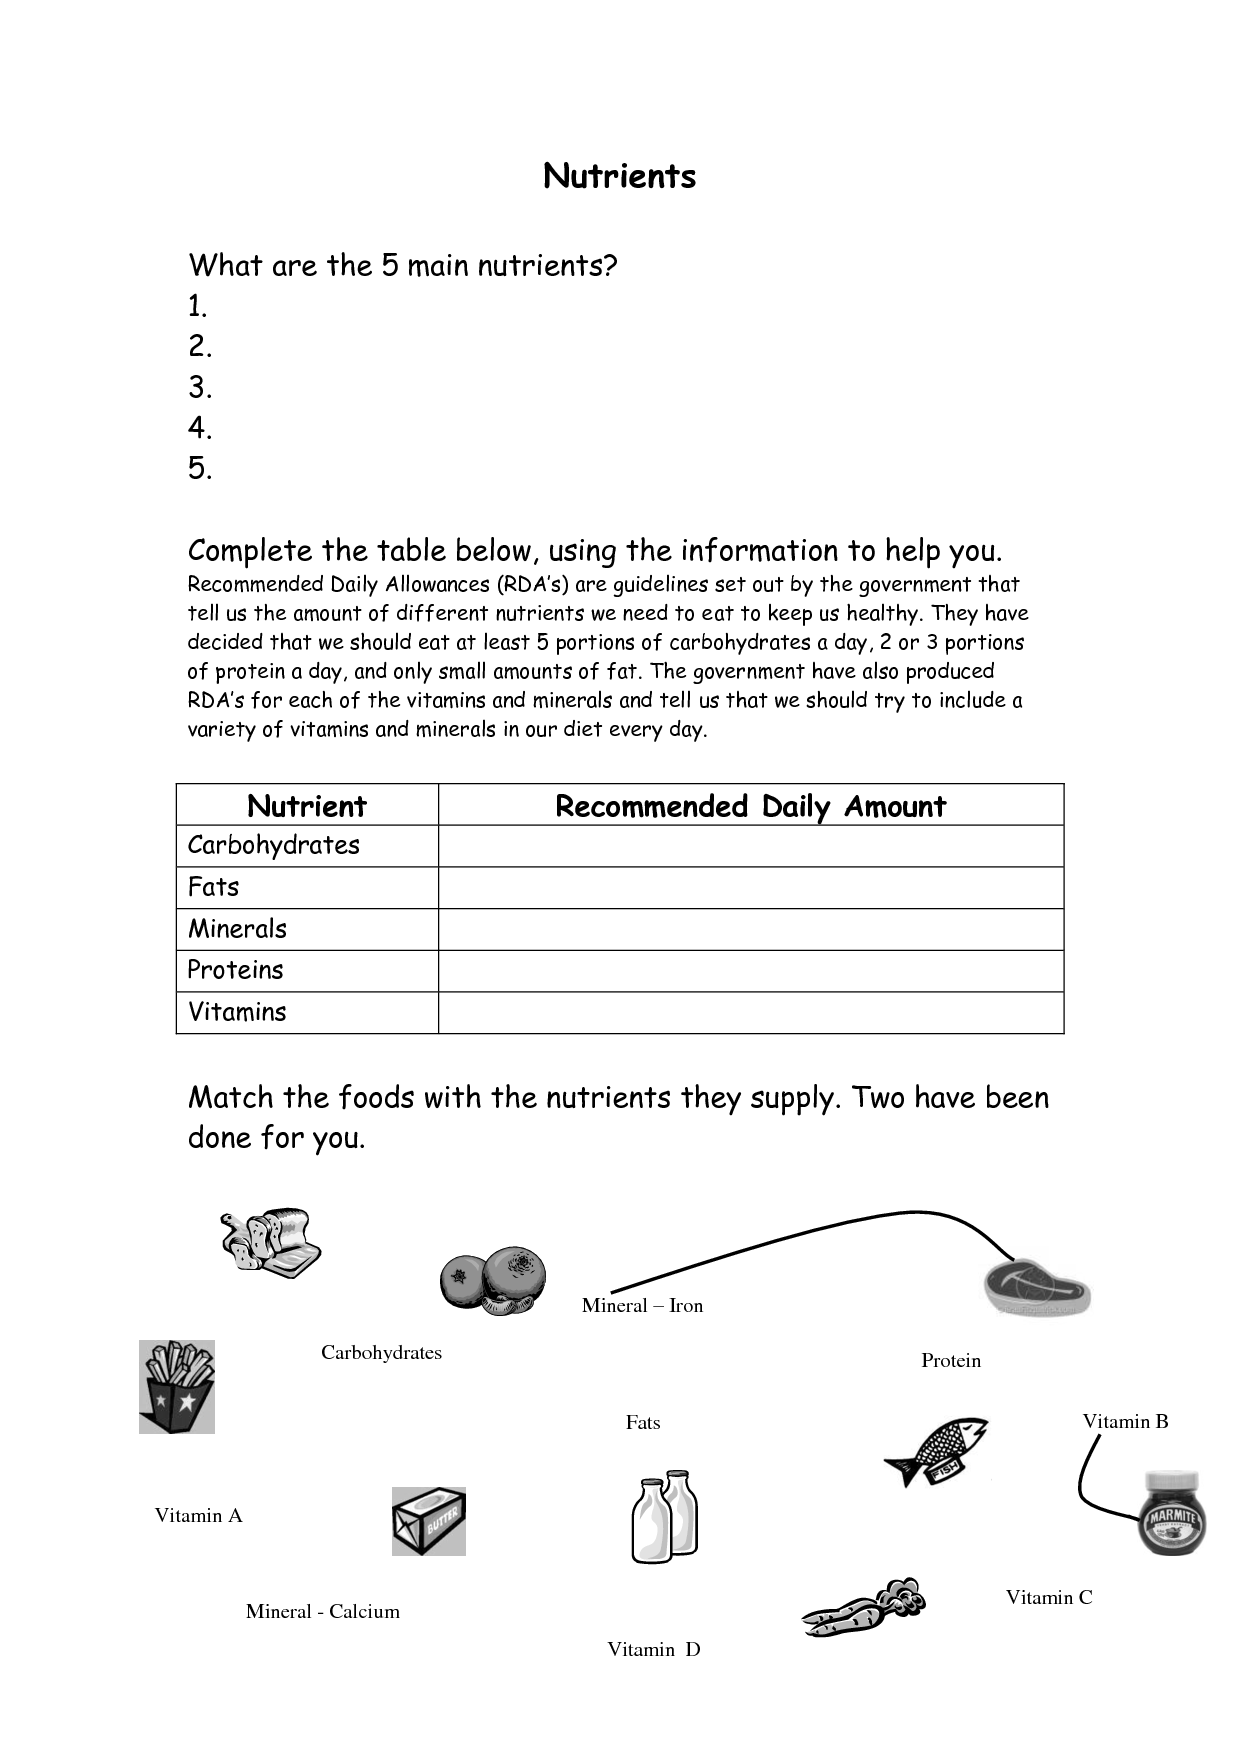 Worksheet On Vitamins